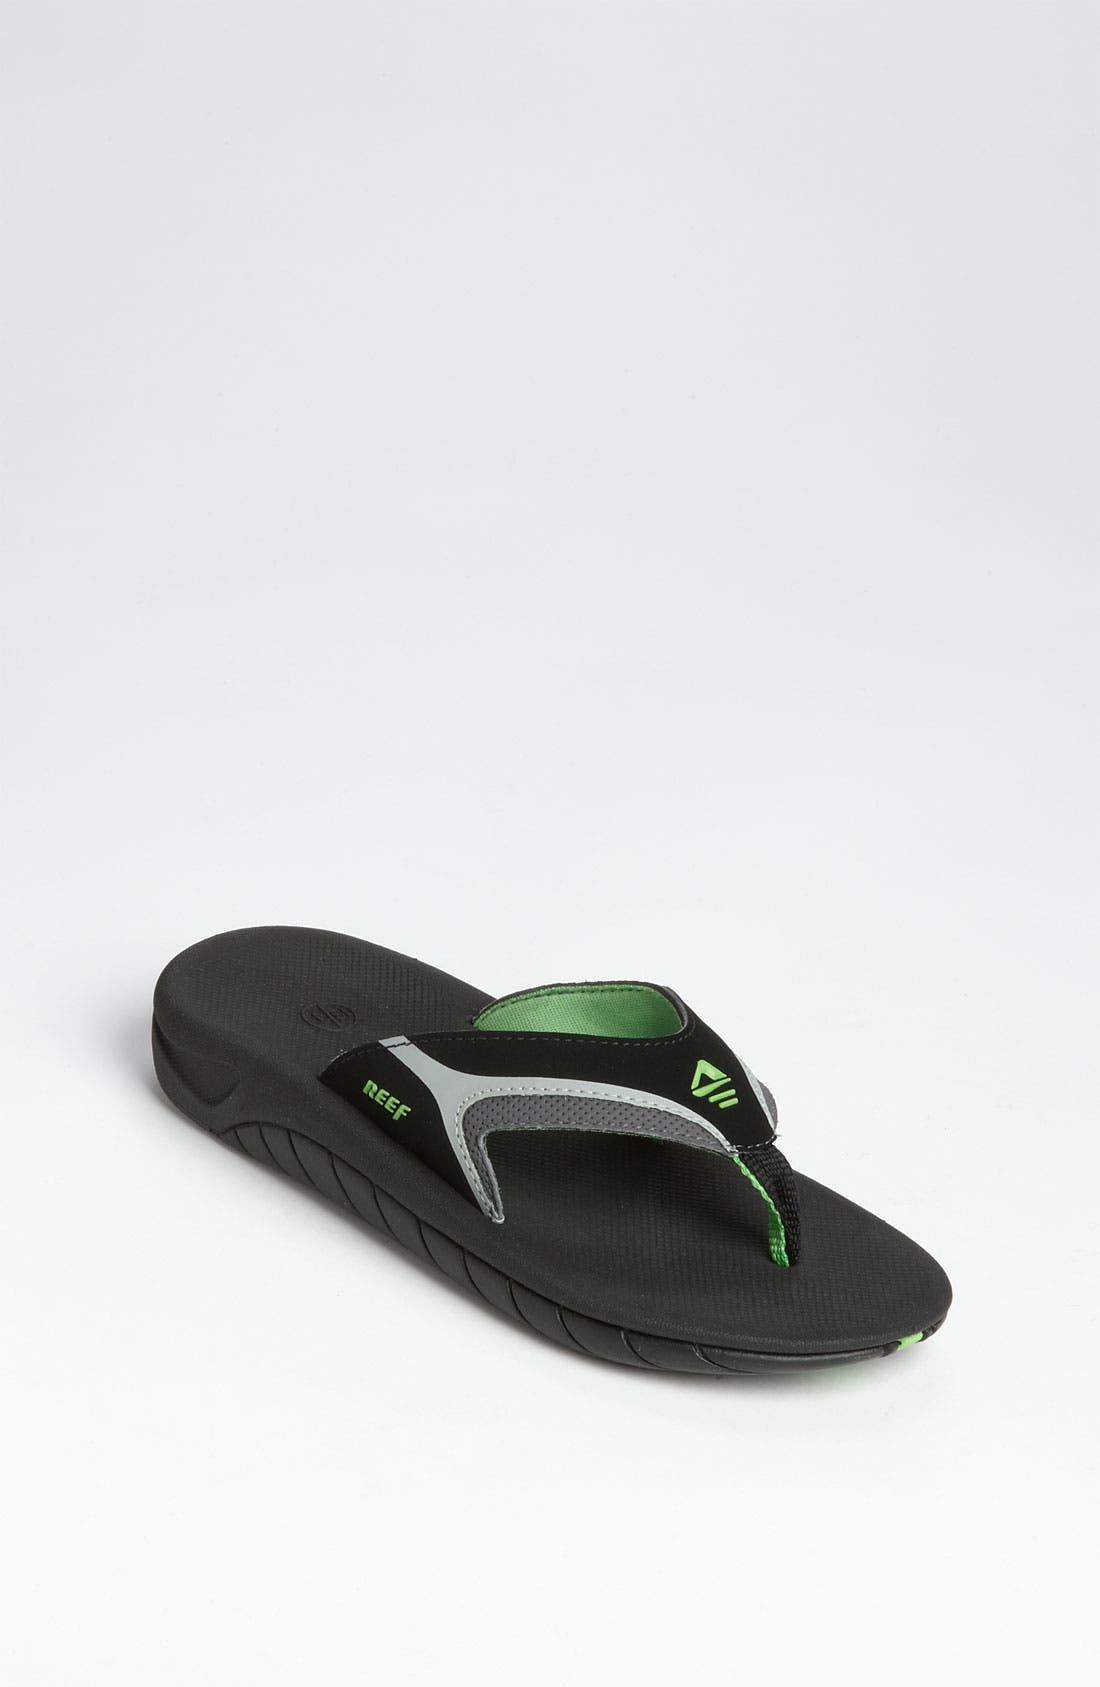 Alternate Image 1 Selected - Reef 'Slap 2' Flip Flop (Walker, Toddler, Little Kid & Big Kid)